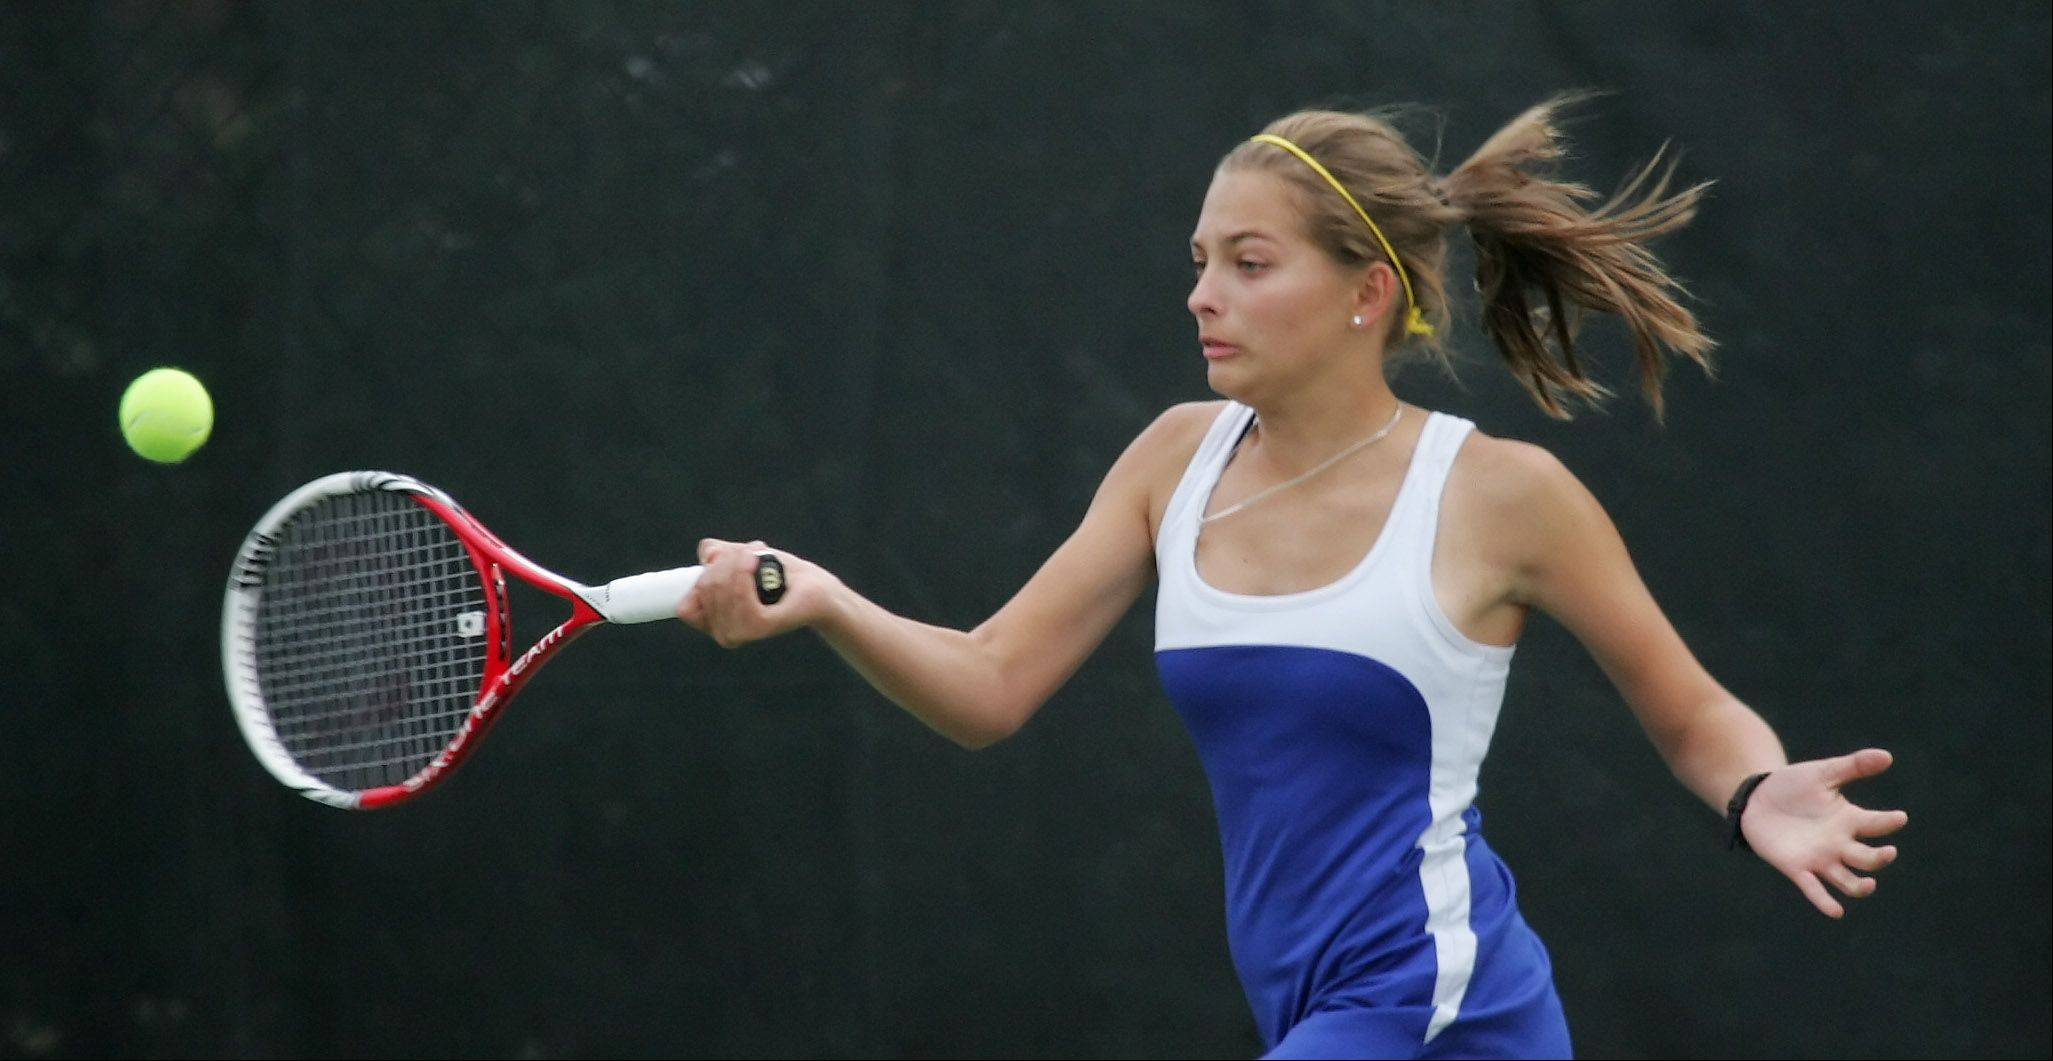 Warren singles player Karyna Bihel returns a shot against Carmel's Brienne Minor on Monday in Mundelein.